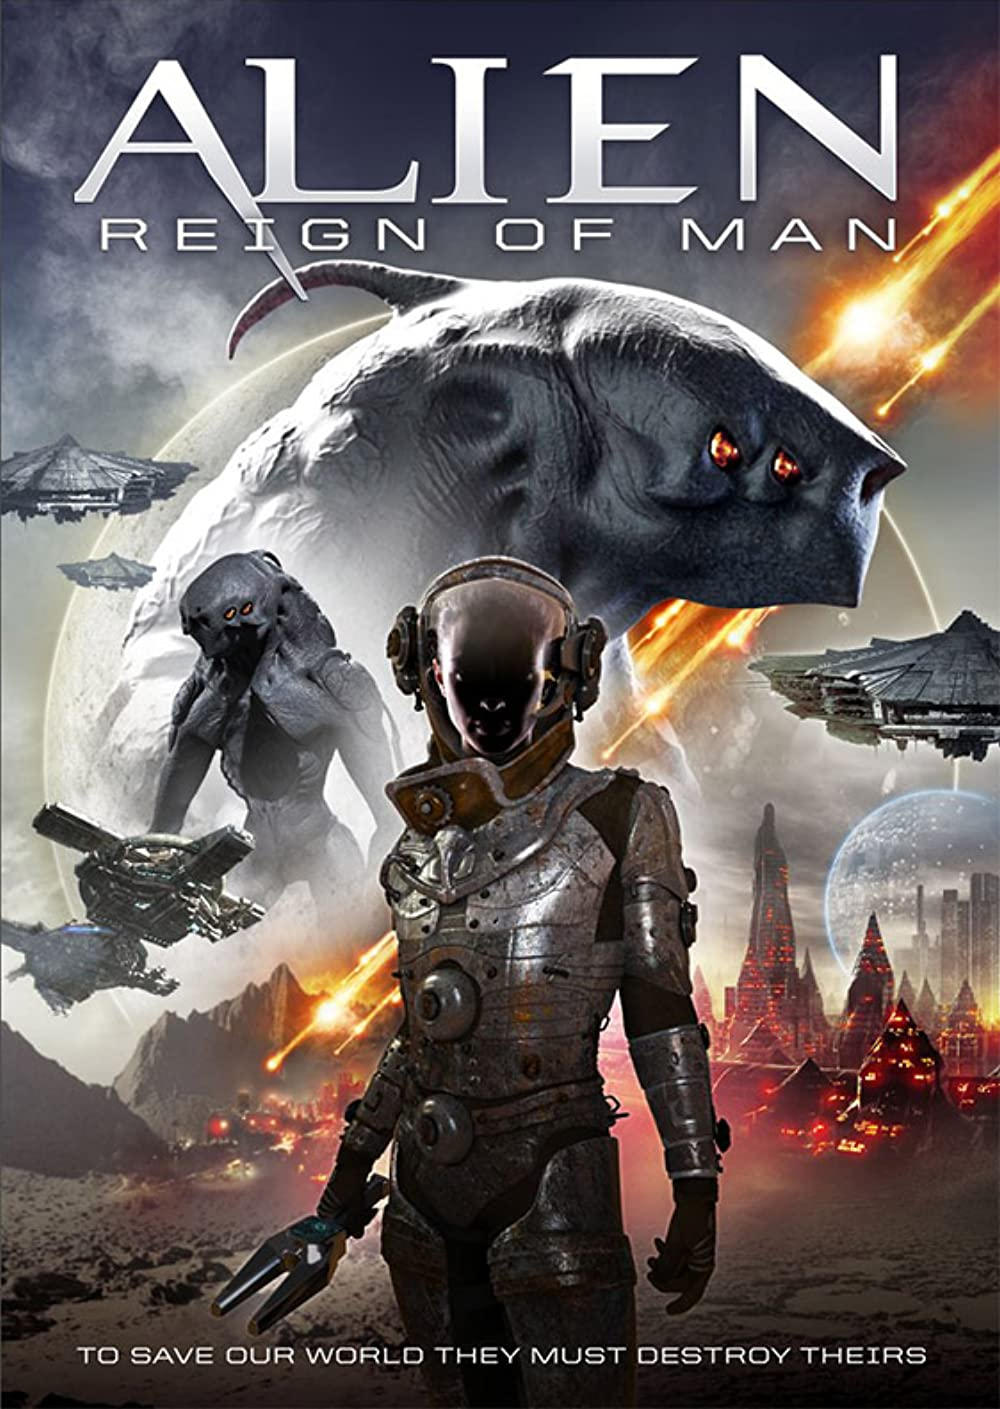 Download Alien Reign of Man 2017 Hindi Dual Audio 720p HDRip ESubs 800MB